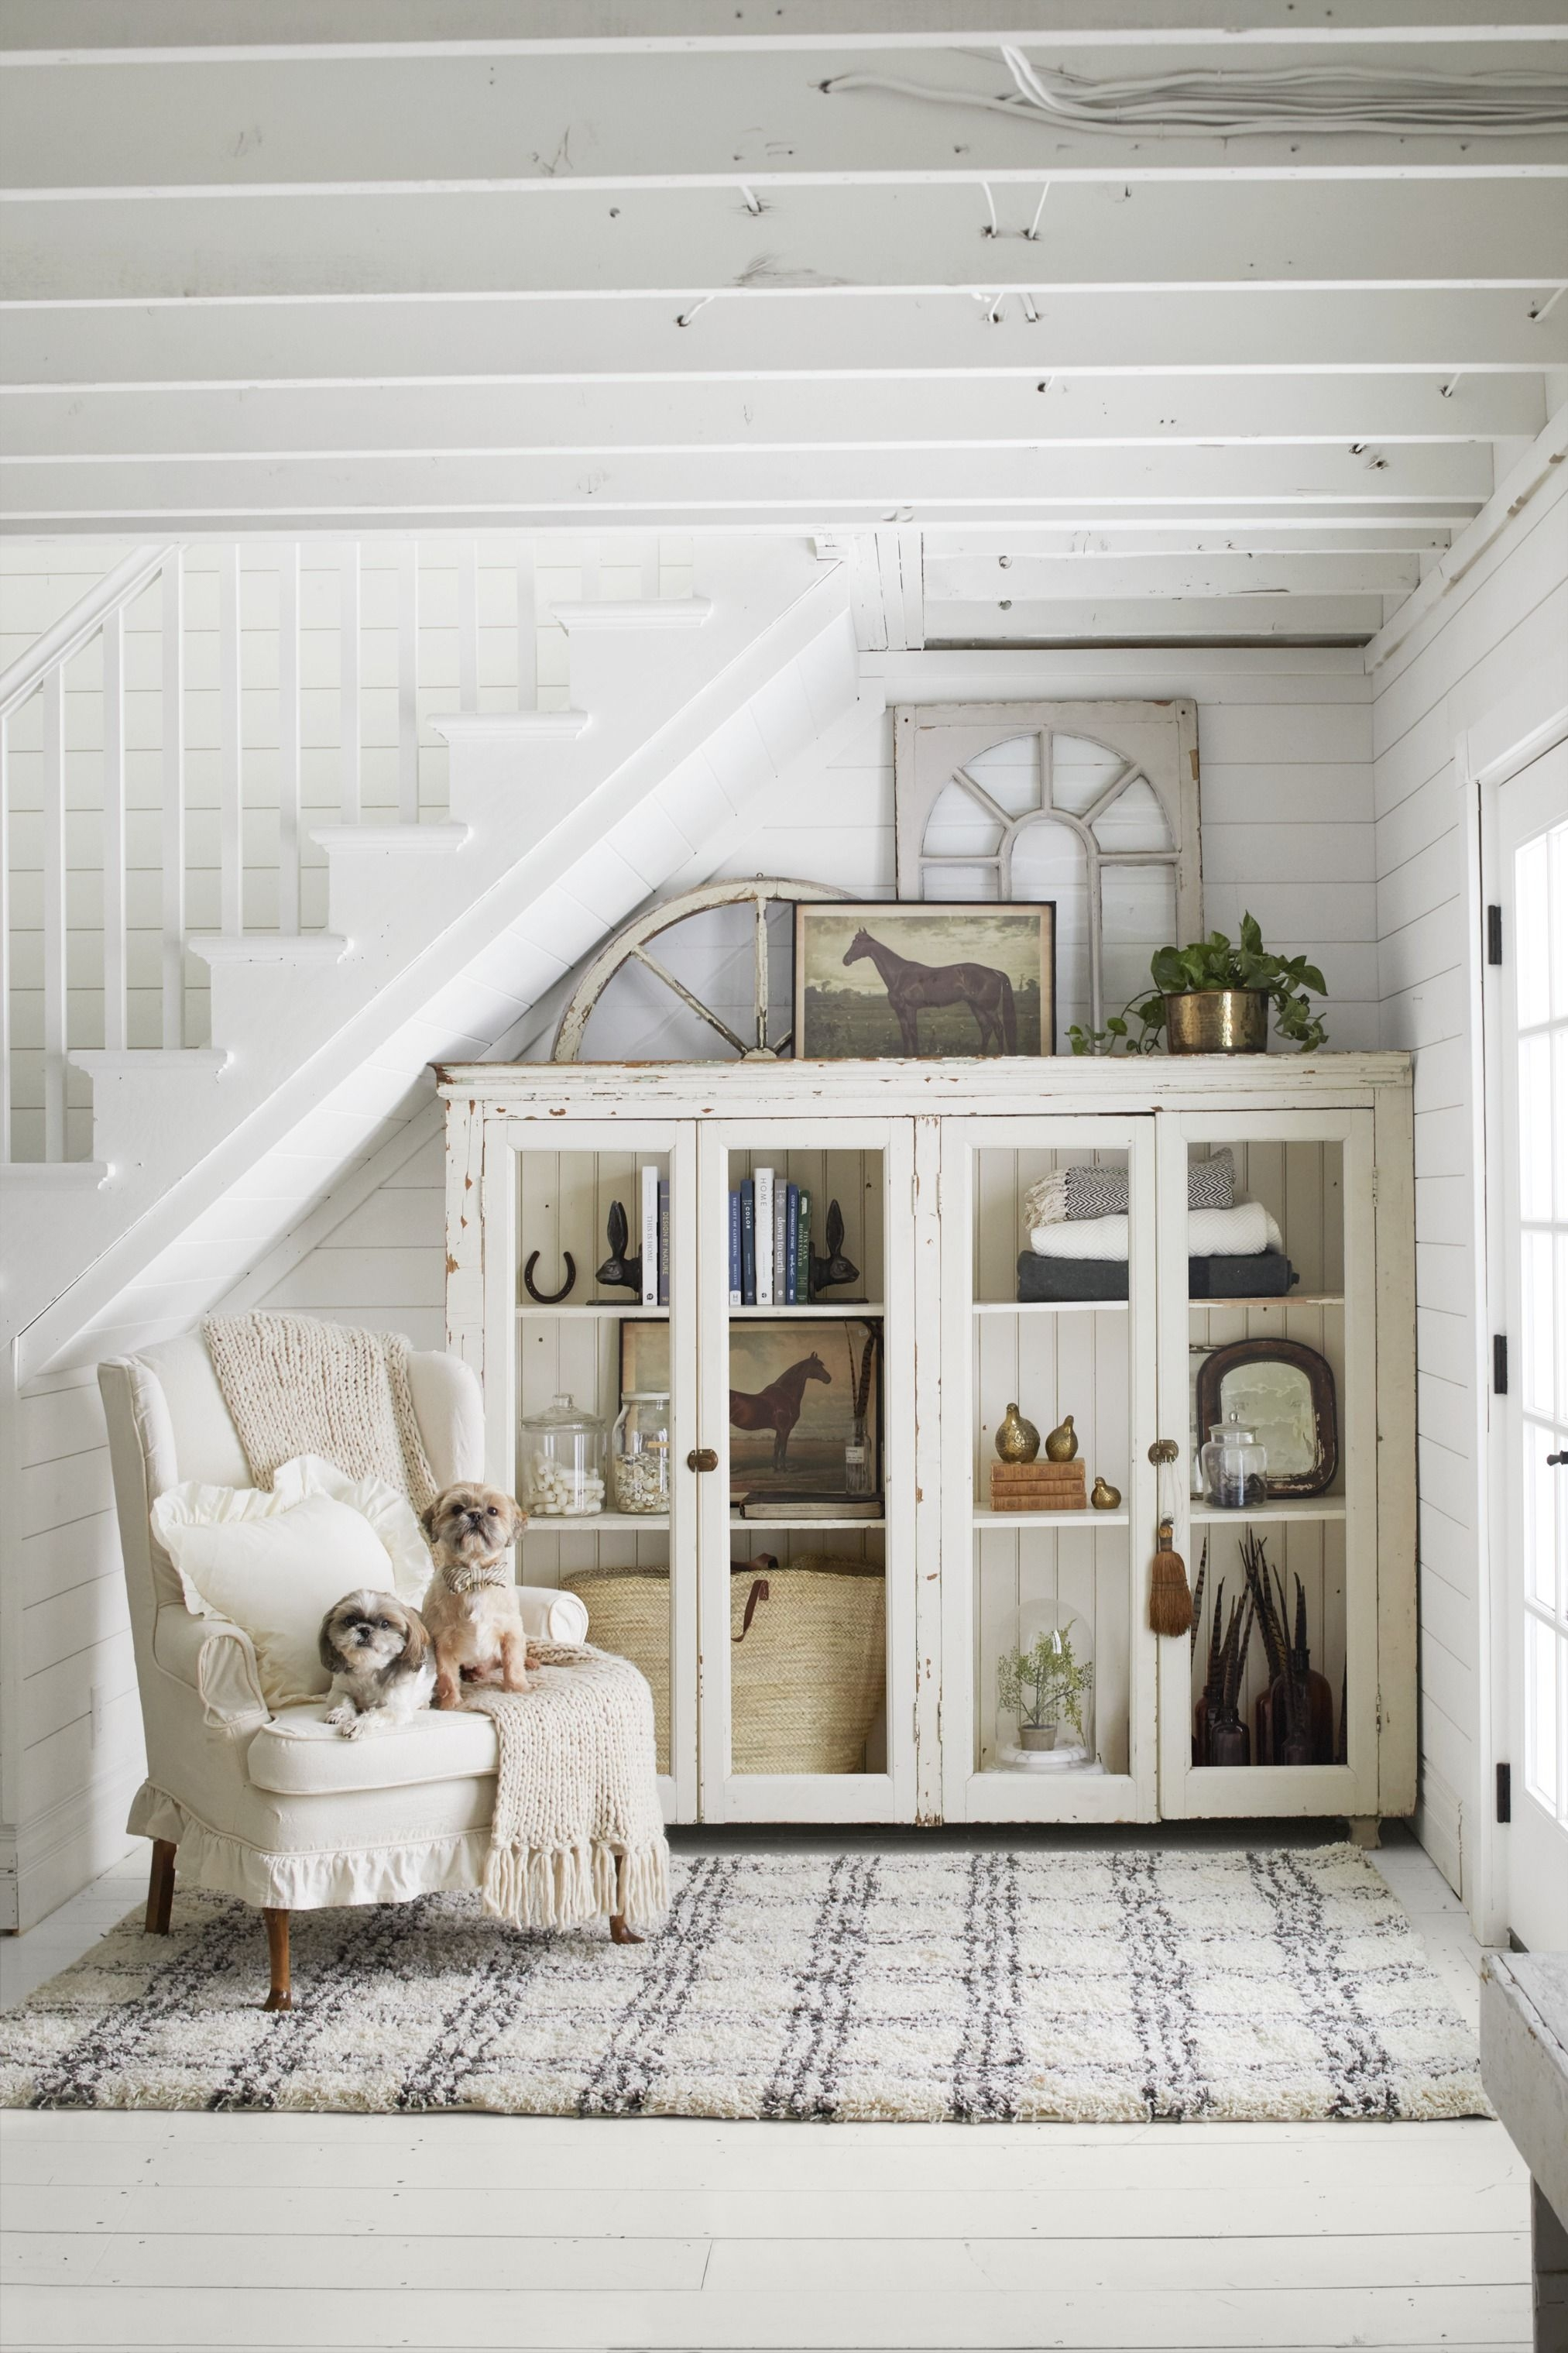 20 Best Under Stair Storage Ideas What To Do With Empty Space | Cabinet Design Under Stairs | Tv Stand | Stairs Storage Ideas | Kitchen | Shelves | Staircase Ideas